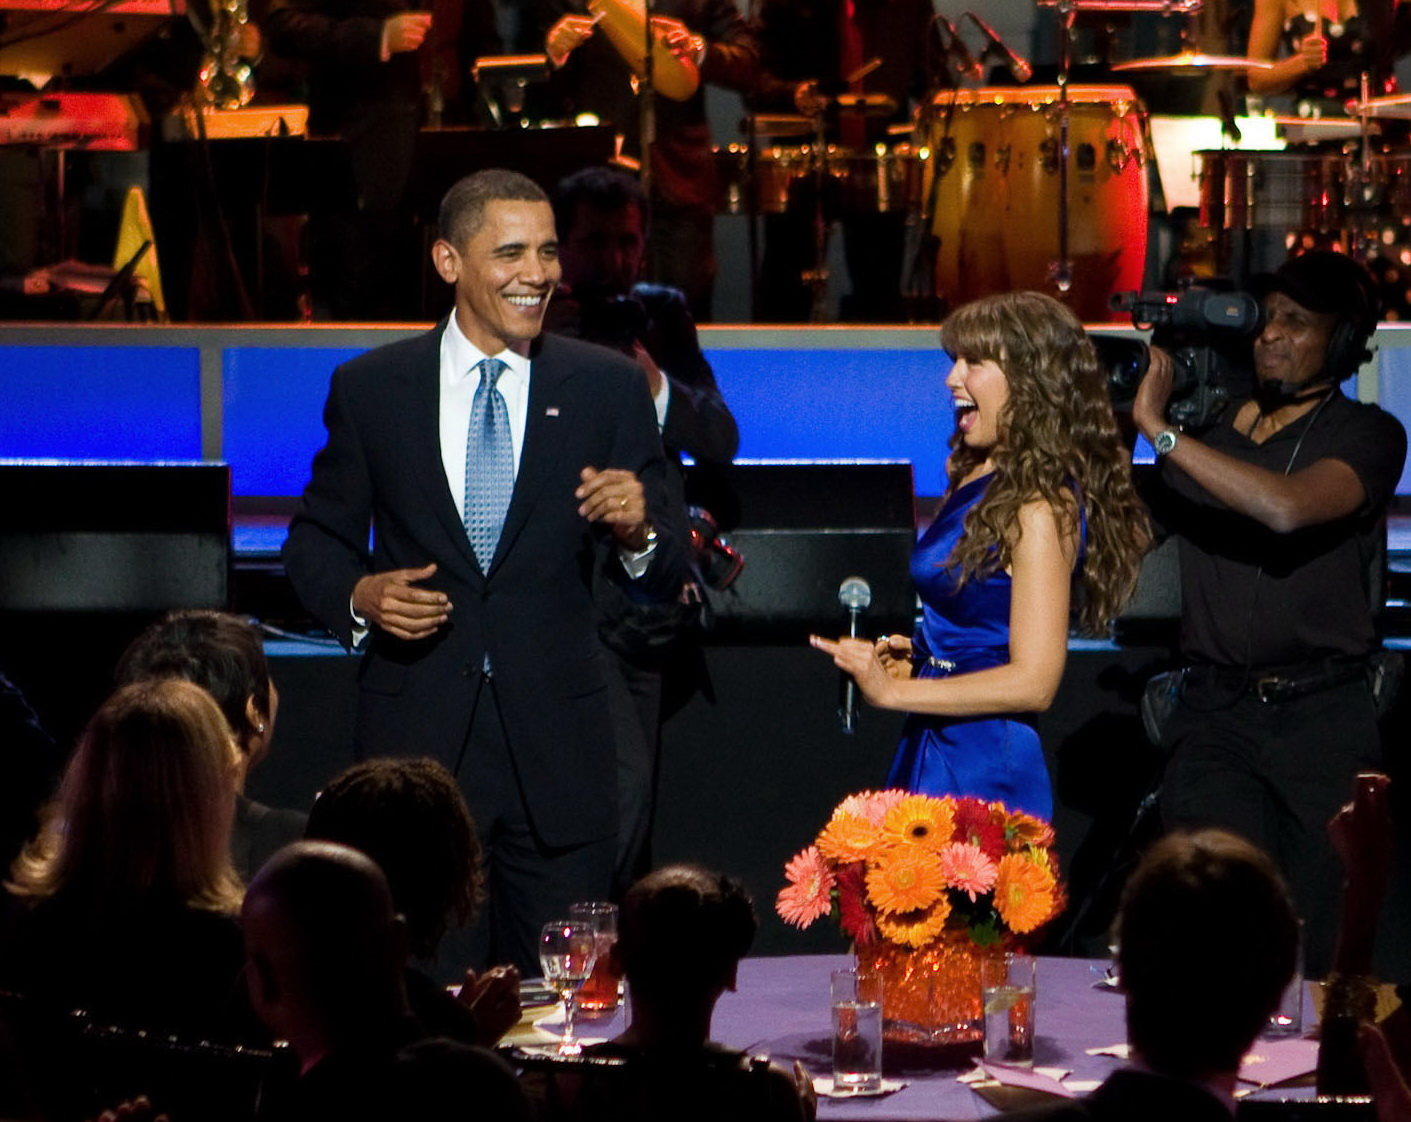 Thalia_and_Barack_Obama